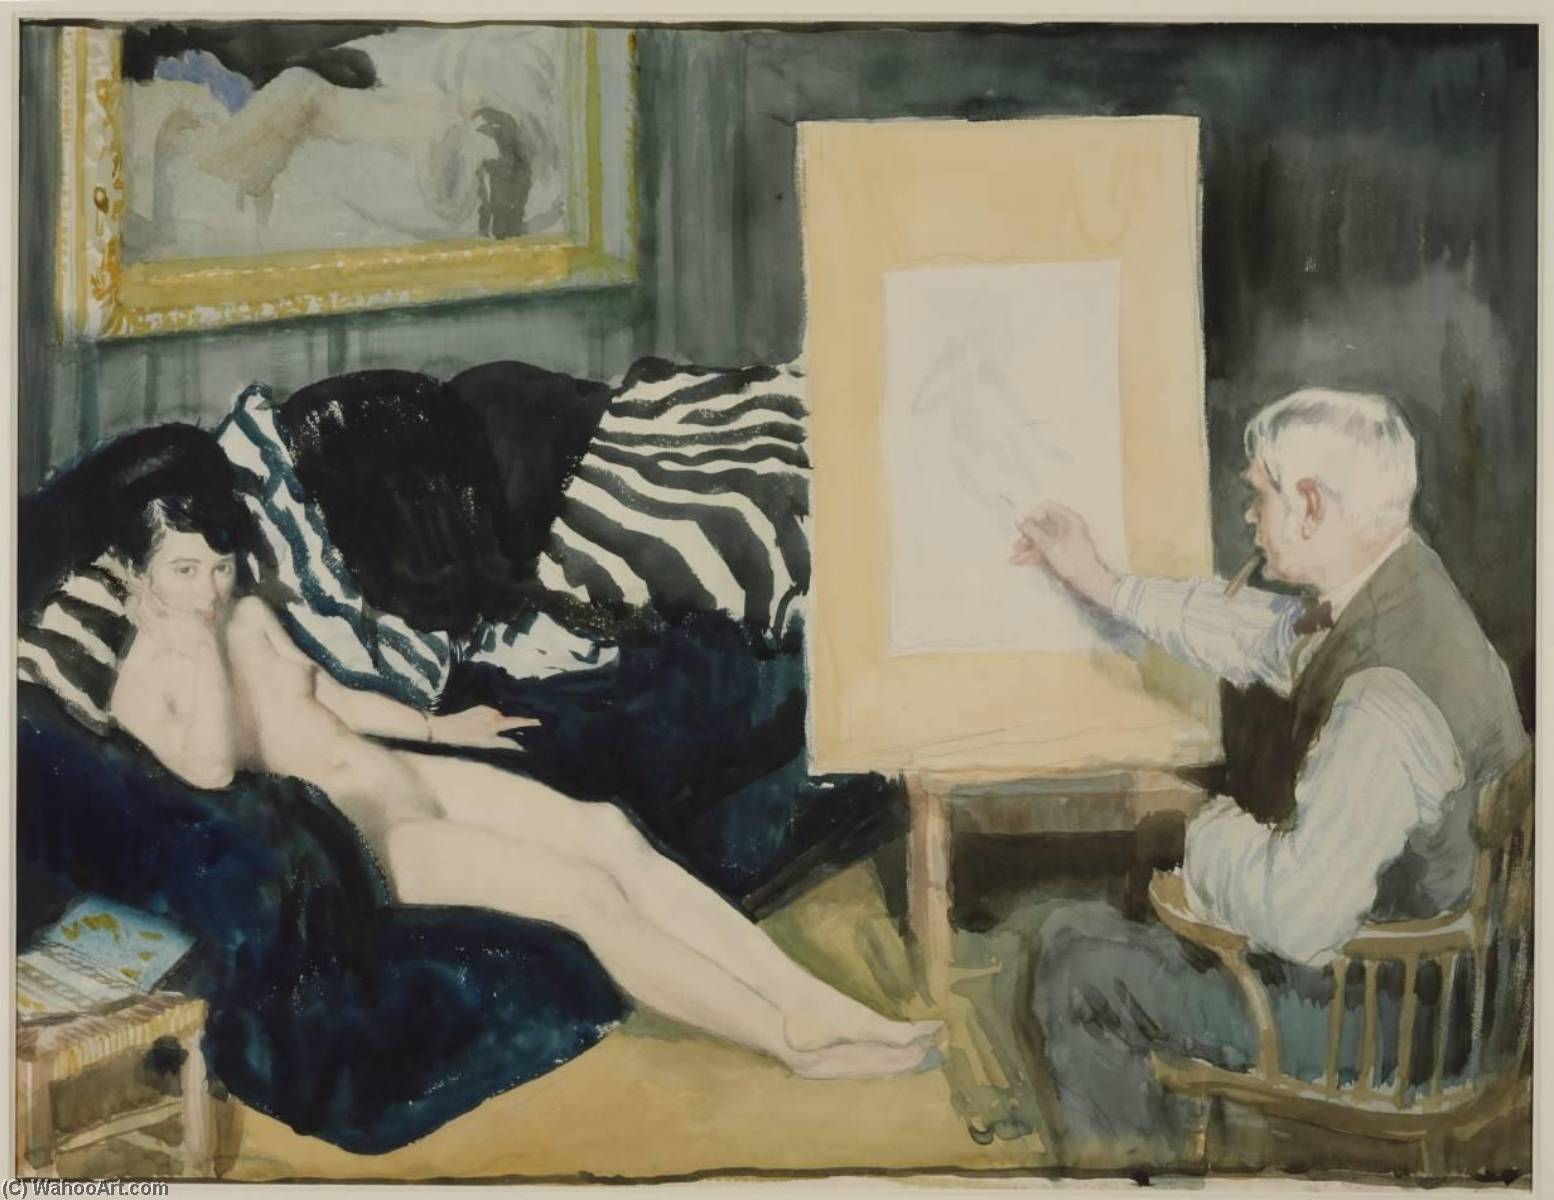 ザー モデル, 水彩画 バイ William Newenham Montague Orpen (1878-1931, Ireland)